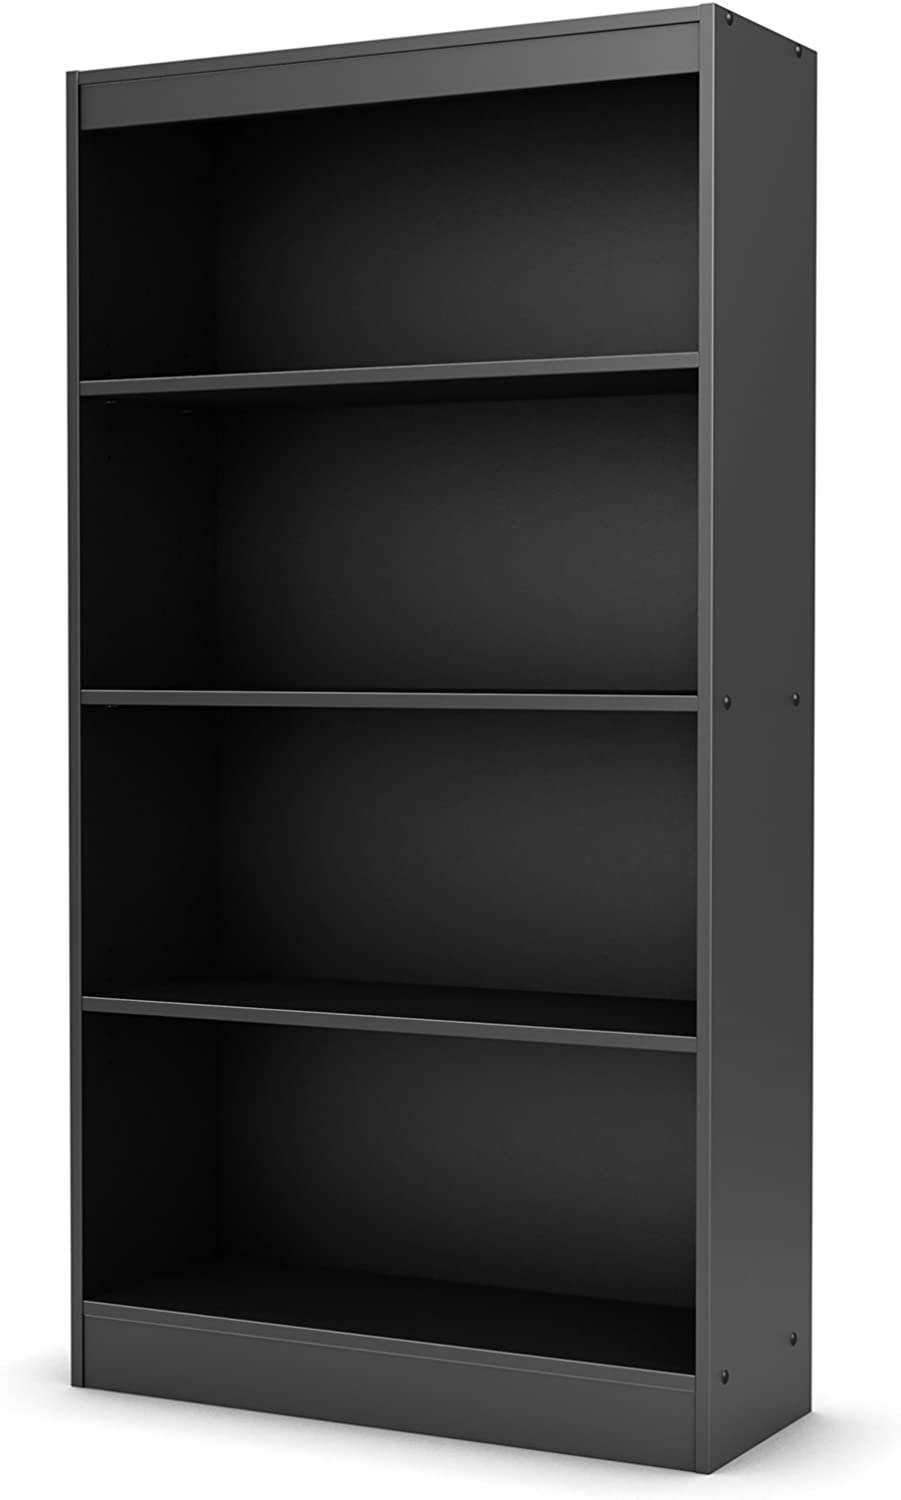 South Shore Furniture Axess Collection, 4-Shelf Bookcase, Black